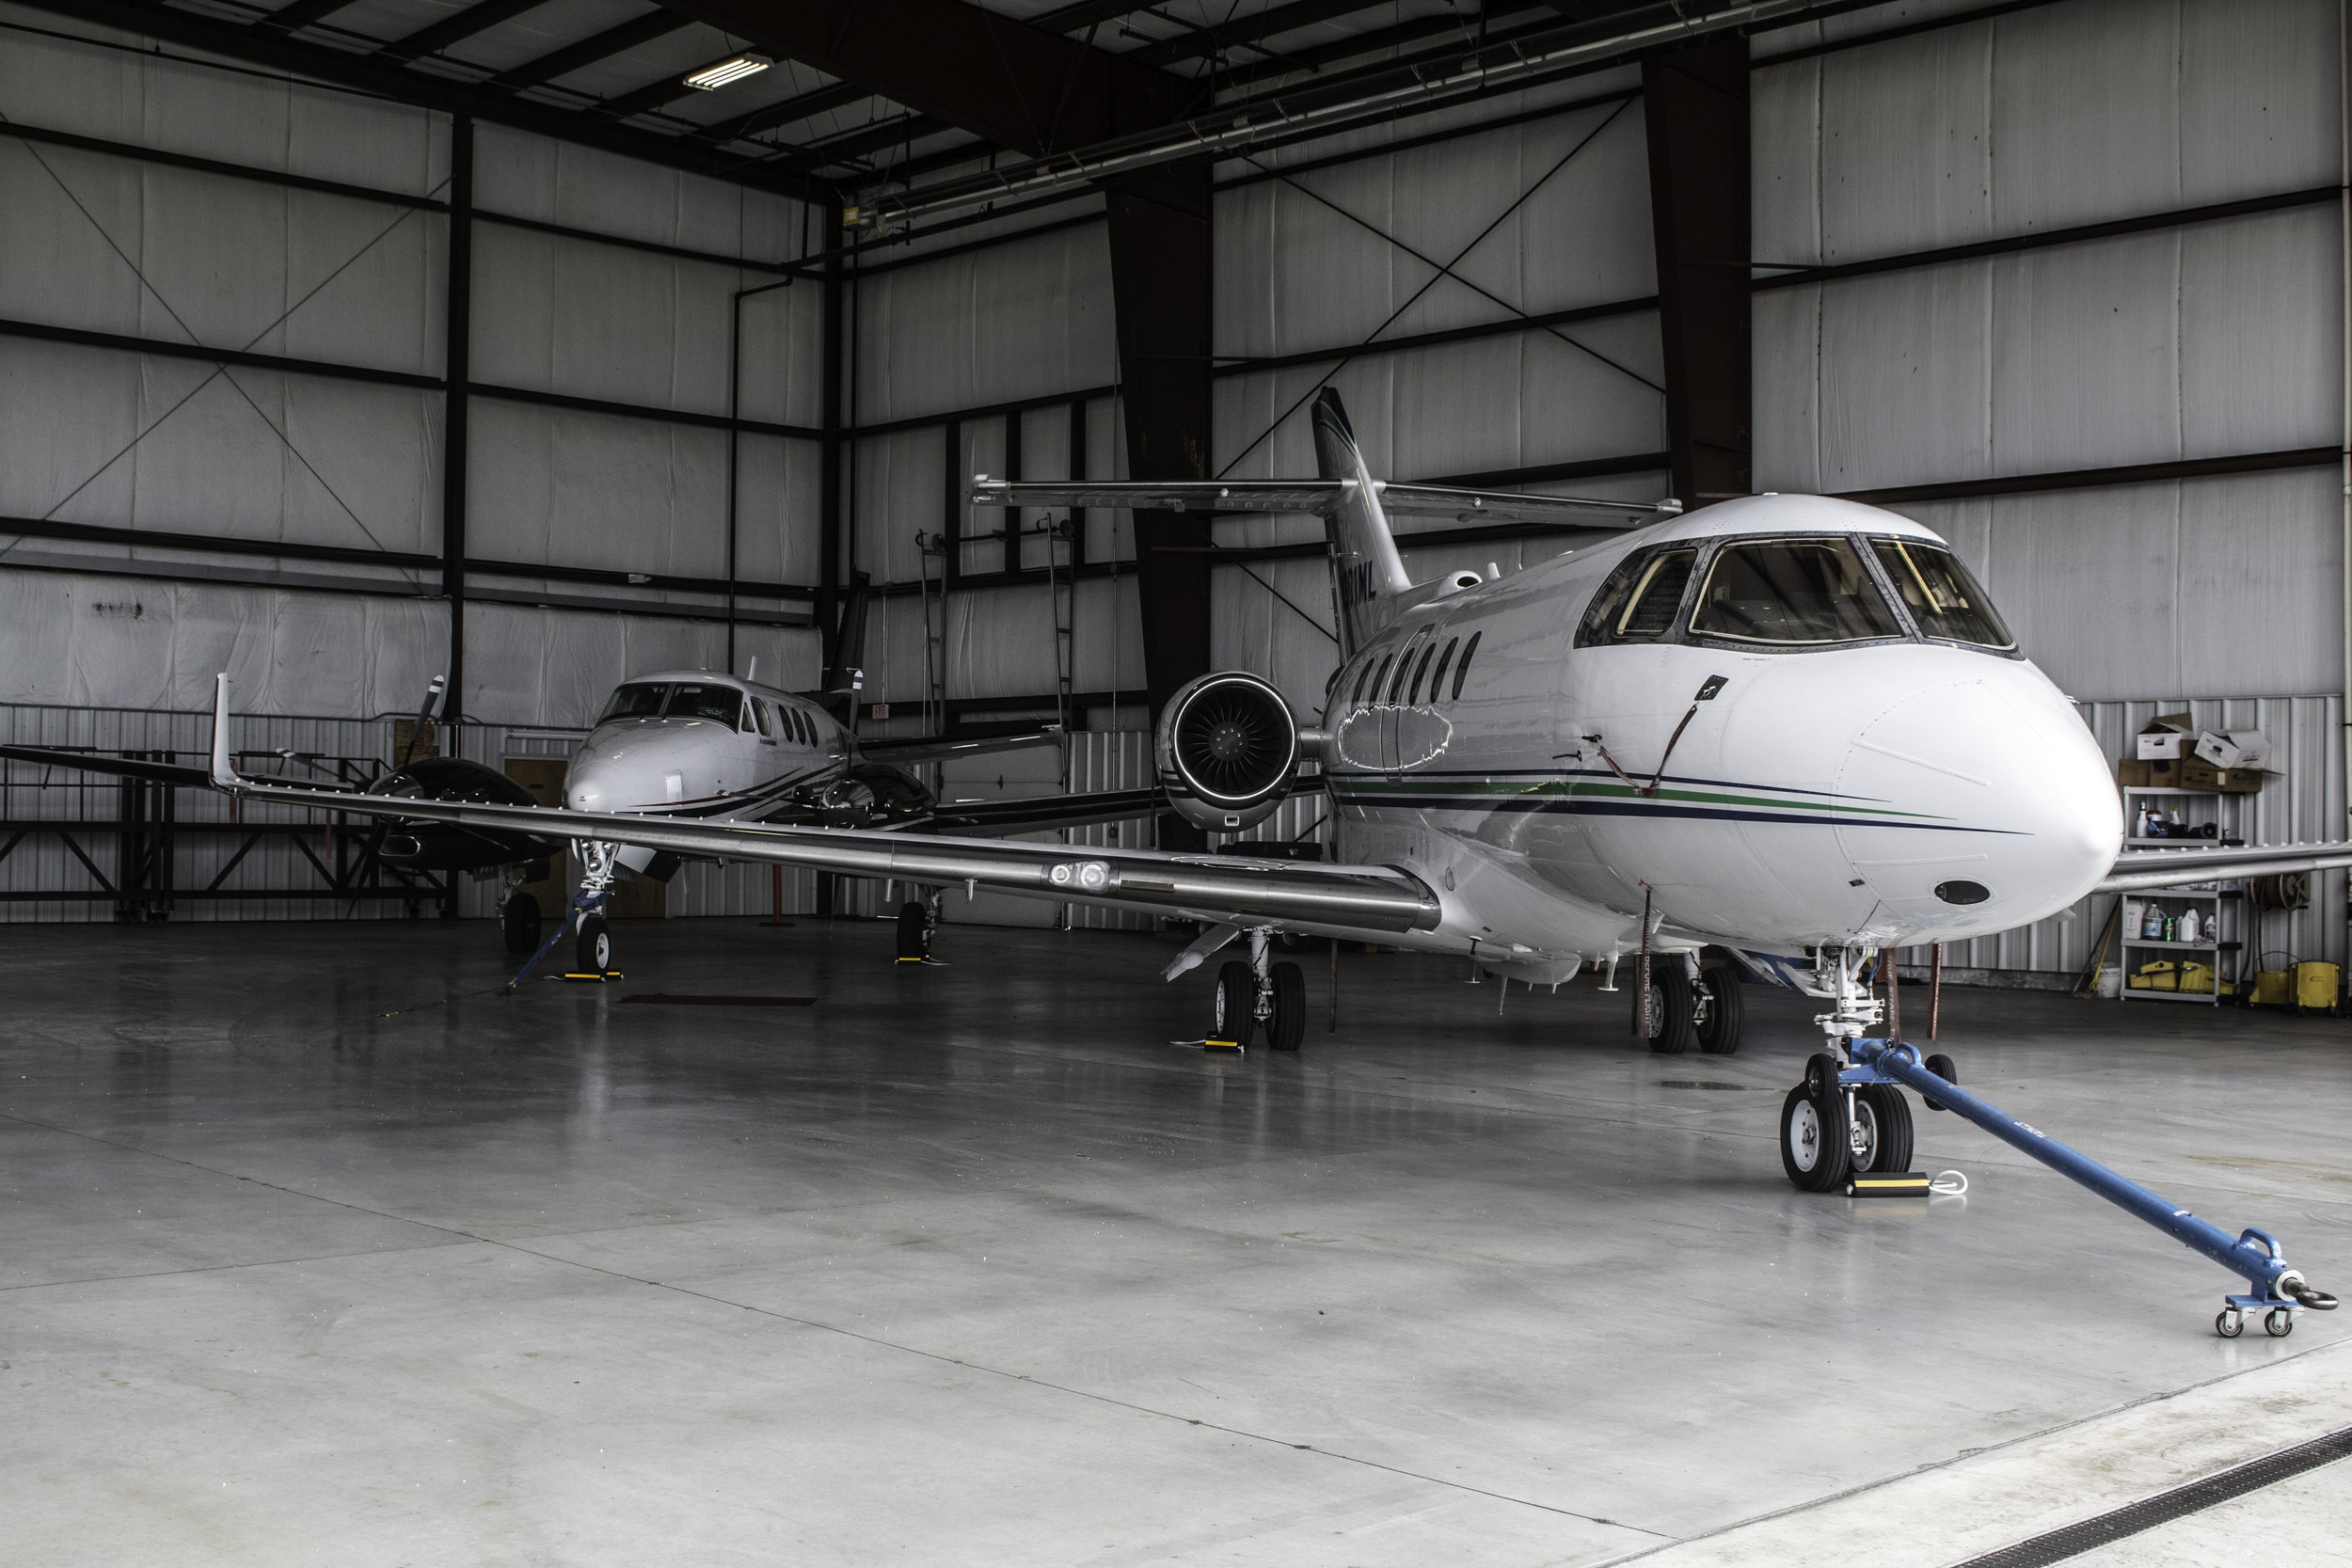 No Special Flight Plan Needed - FDK is conveniently located outside of the D.C. Special Flight Rules Area (SFRA), so special ATC procedures are not required to come and go. This also makes FDK a great alternative option for last minute bookings, weather diverts, or schedule changes.